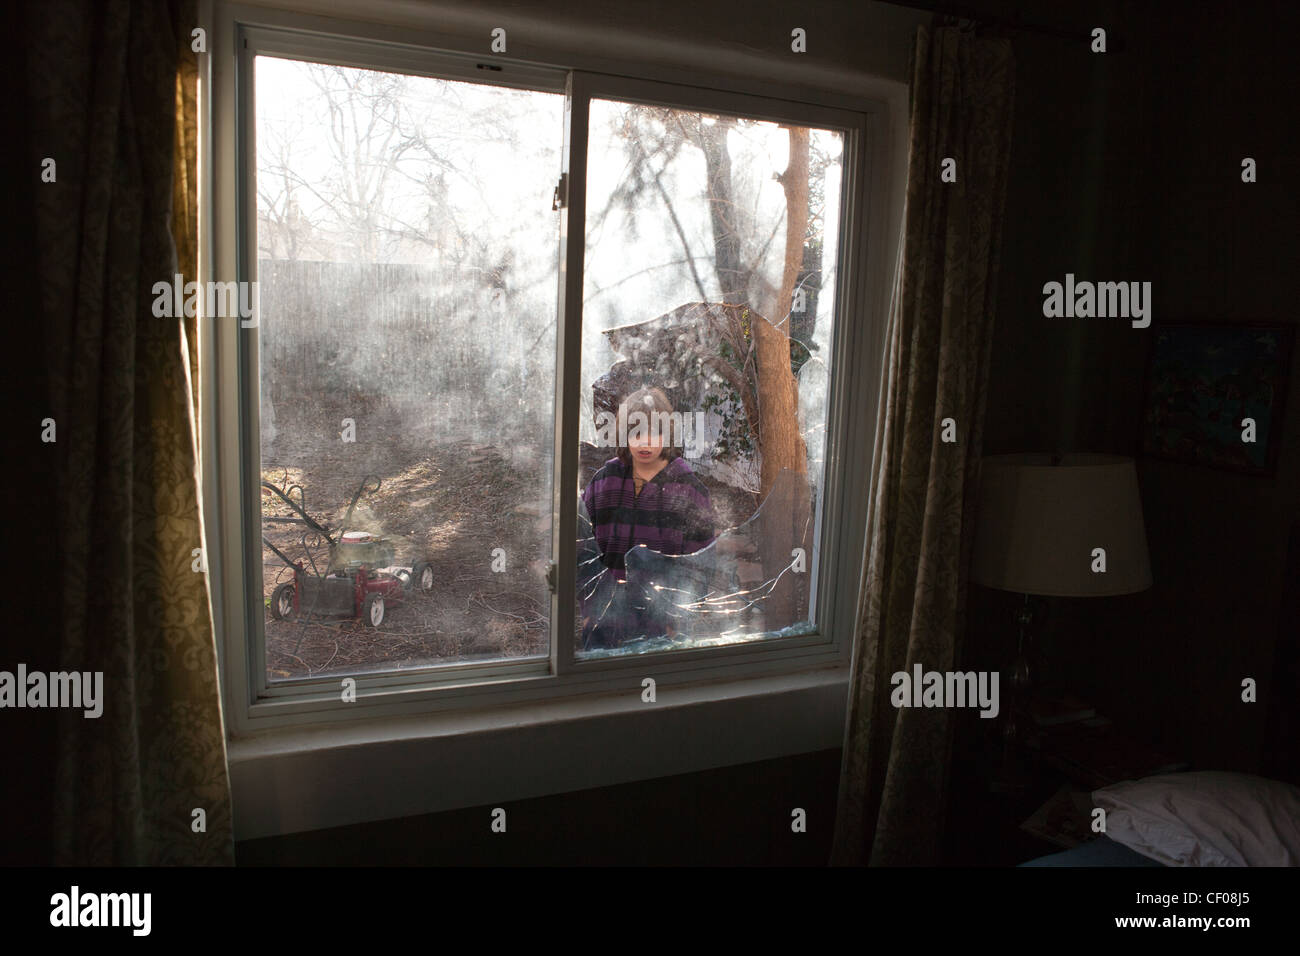 A nine year old boy stares at a broken window. - Stock Image